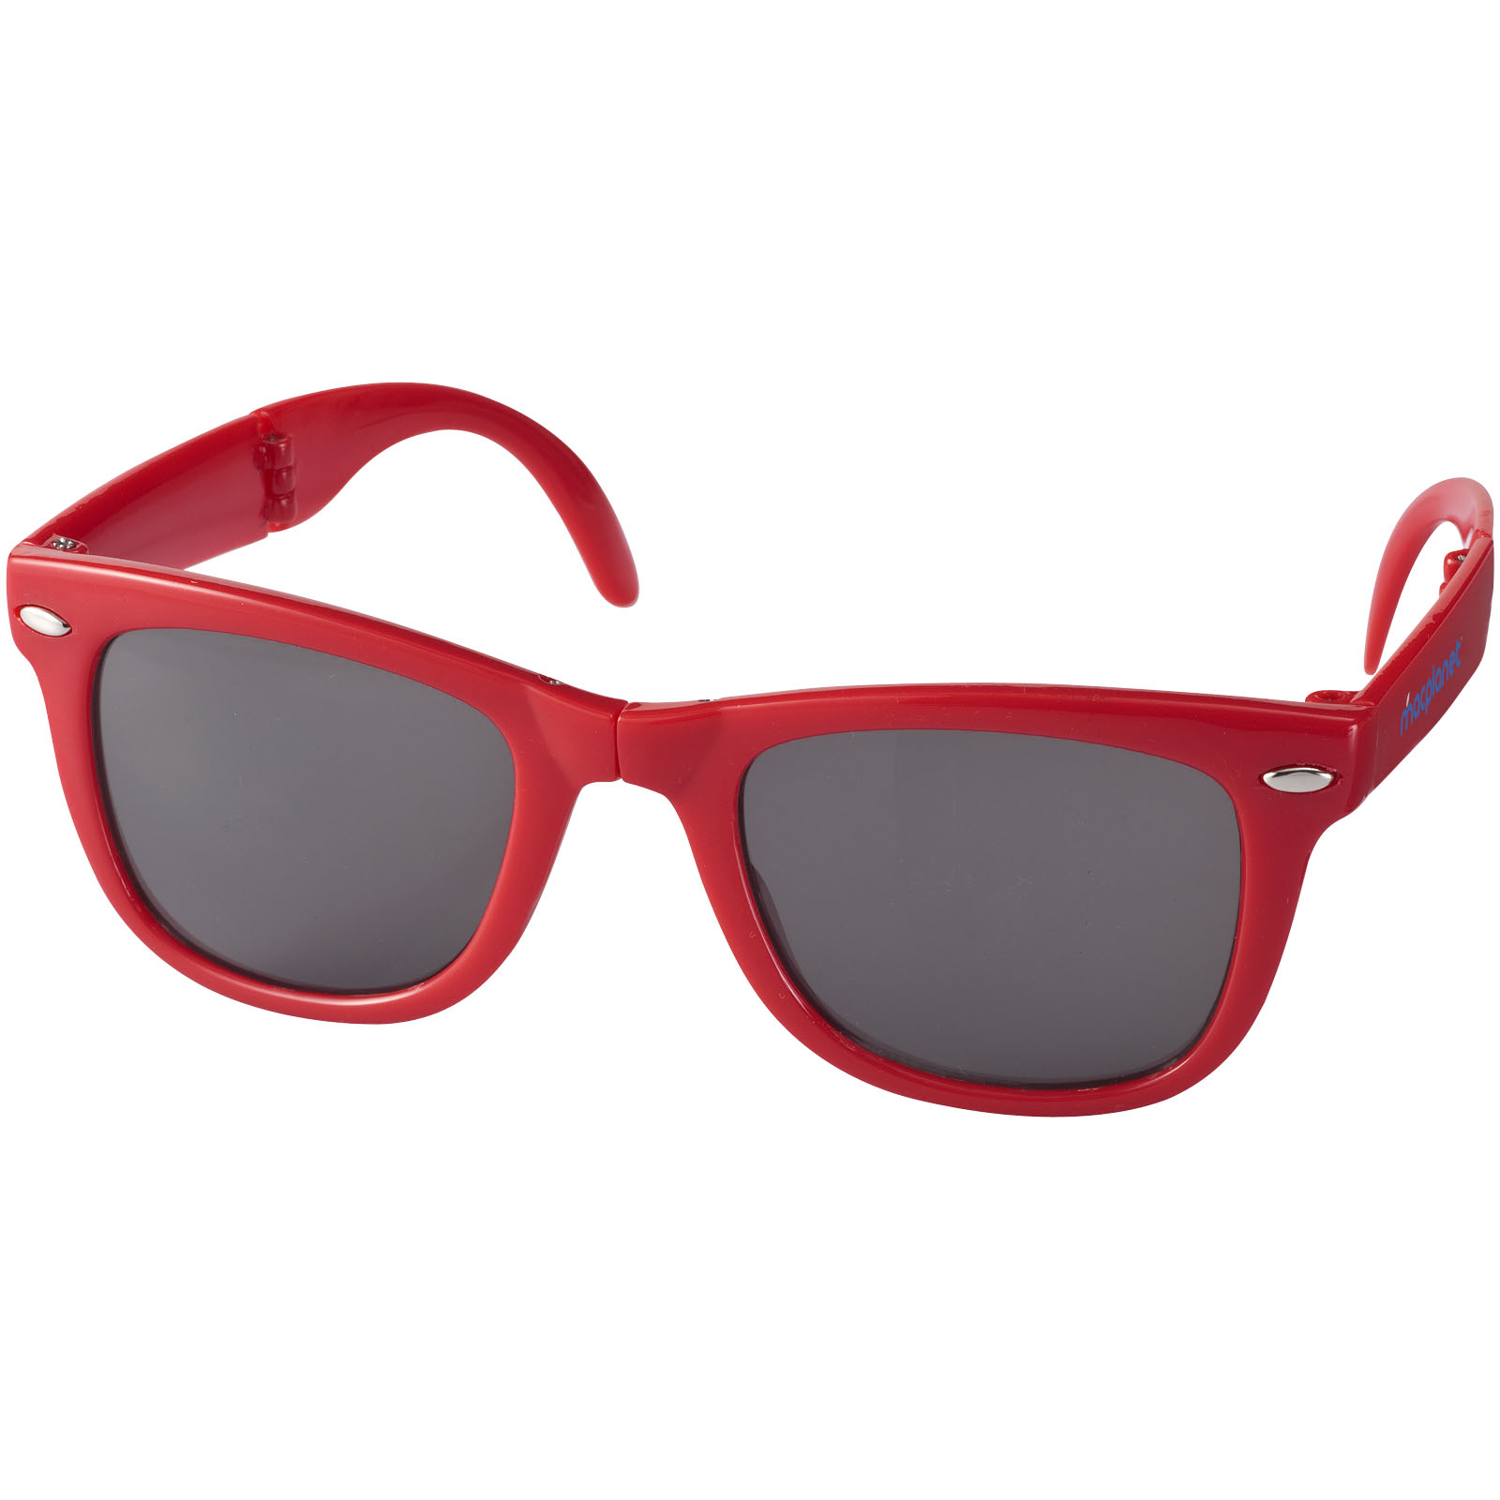 Sun Ray Foldable Sunglasses